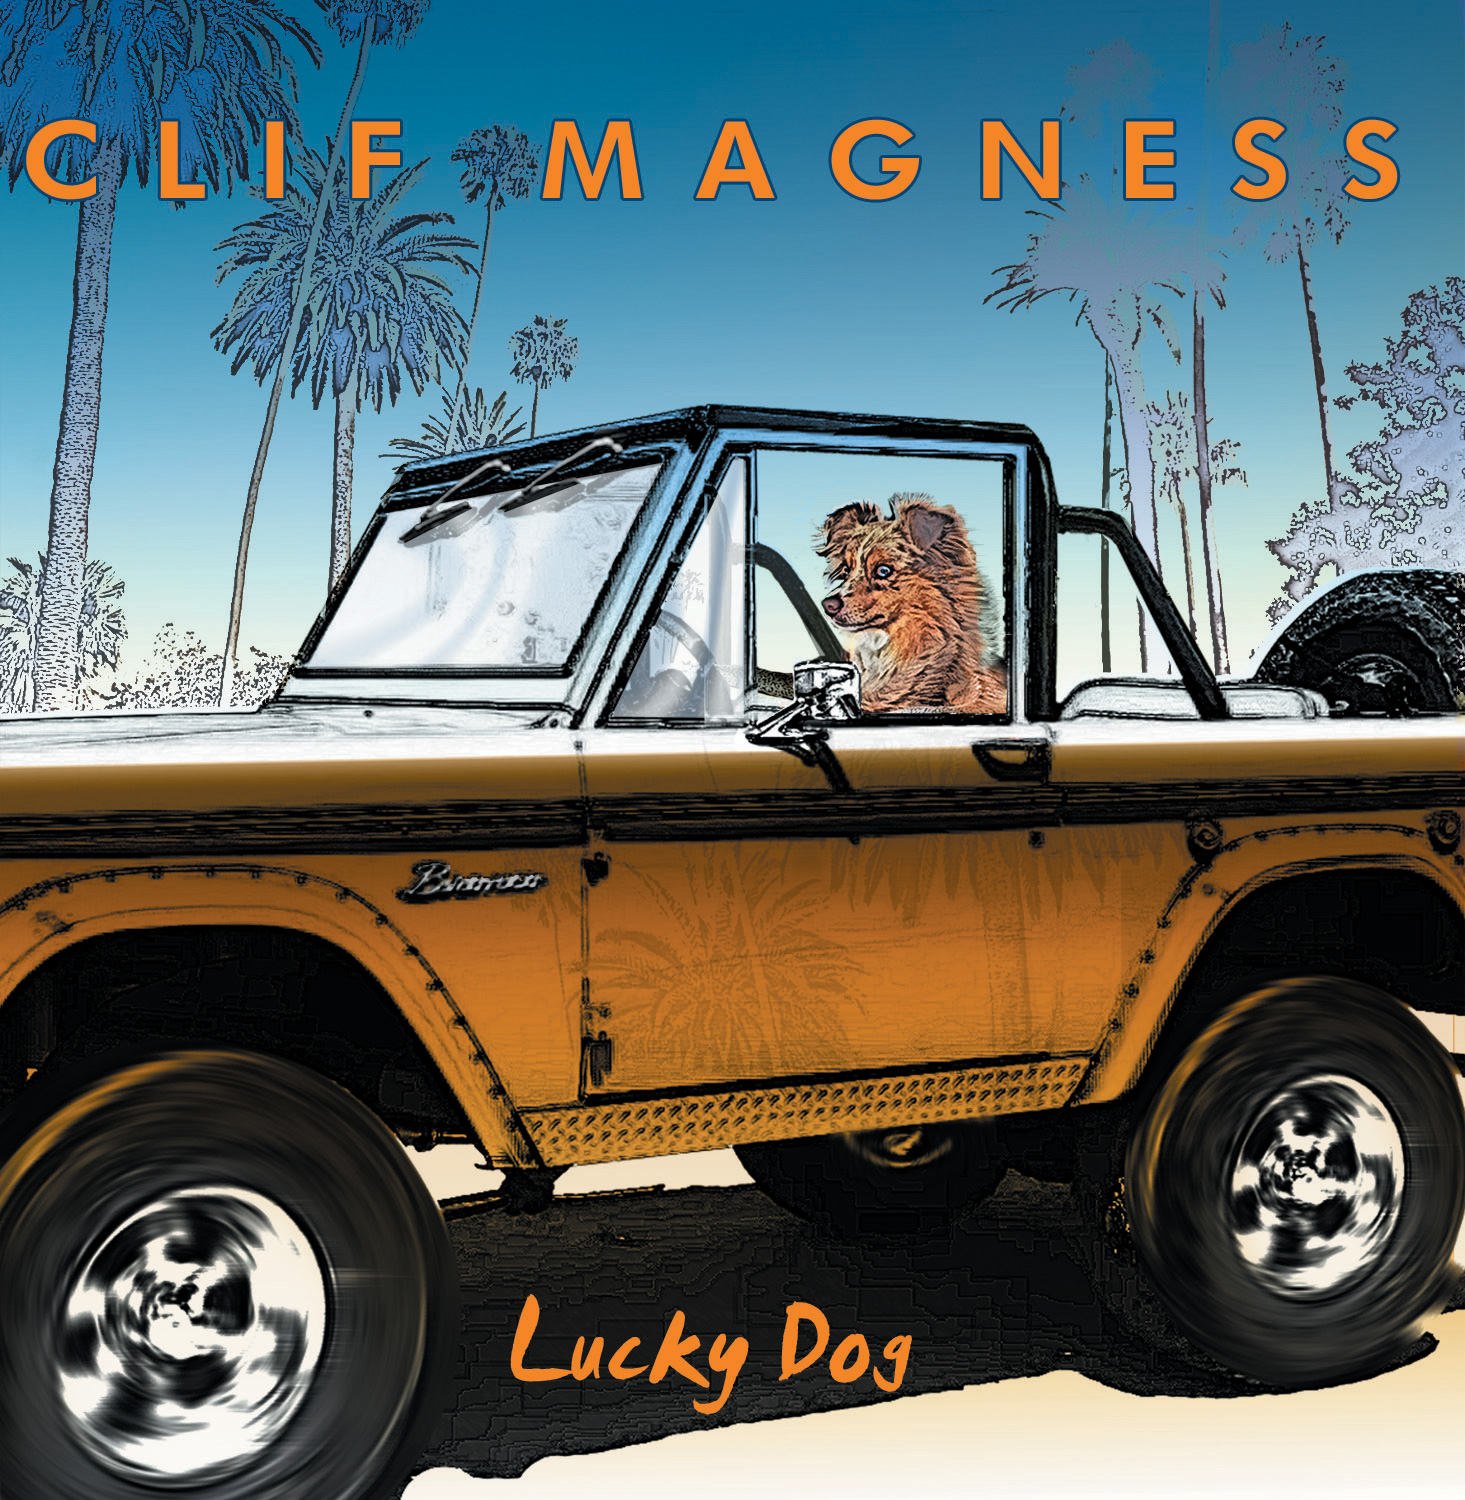 Clif Magness - Lucky Dog Music Review